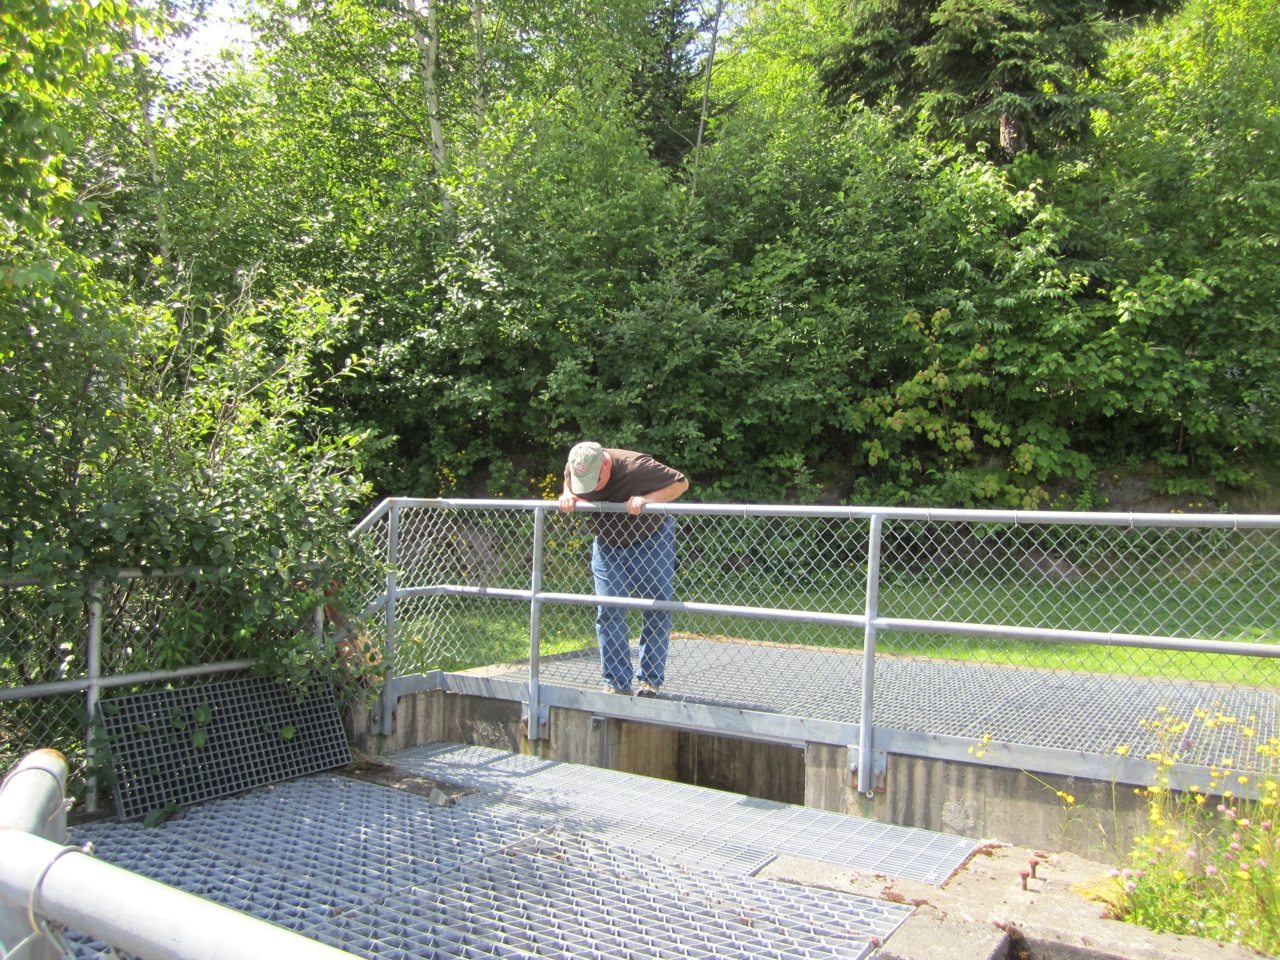 David Watching The Salmon Swim Up-Stream Using The Fish Ladders Through The Re-Routed Waterway.